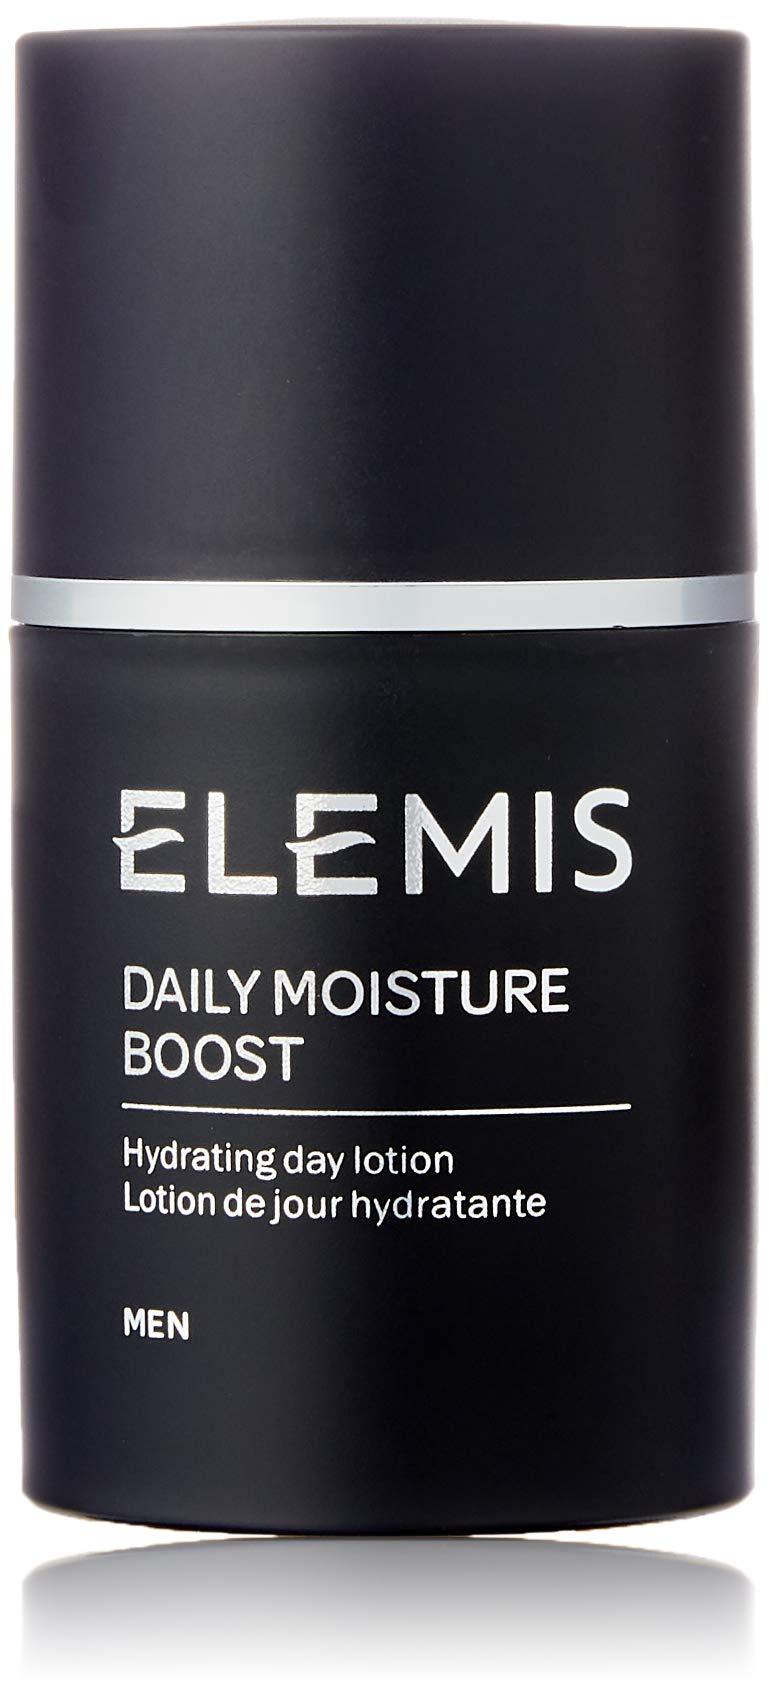 ELEMIS Daily Moisture Boost - Hydrating Day Lotion for Men, 1.6 fl. oz